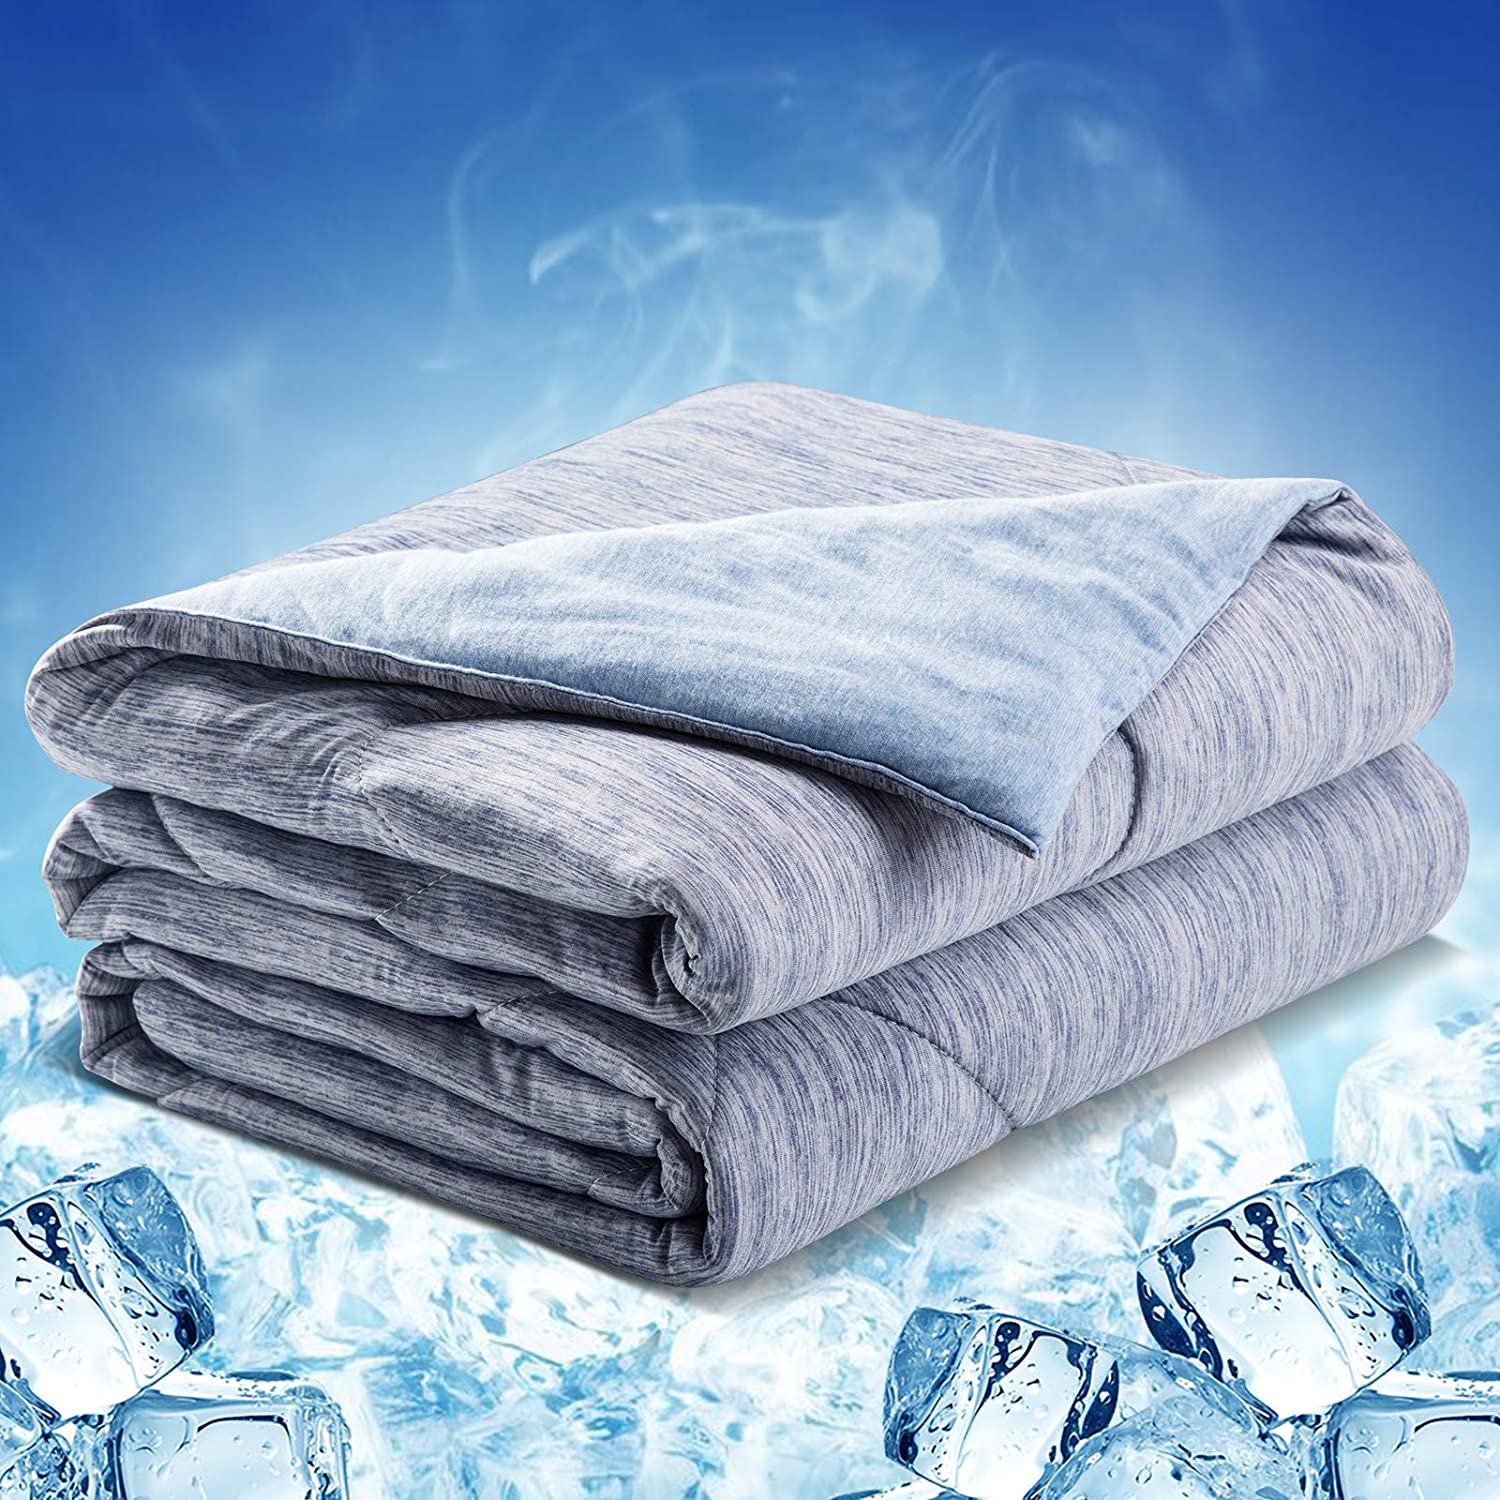 Luxear-Arc-chill-Cooling-Comforter Buy Luxear Arc-Chill Cooling Bedding for Hot Sleepers